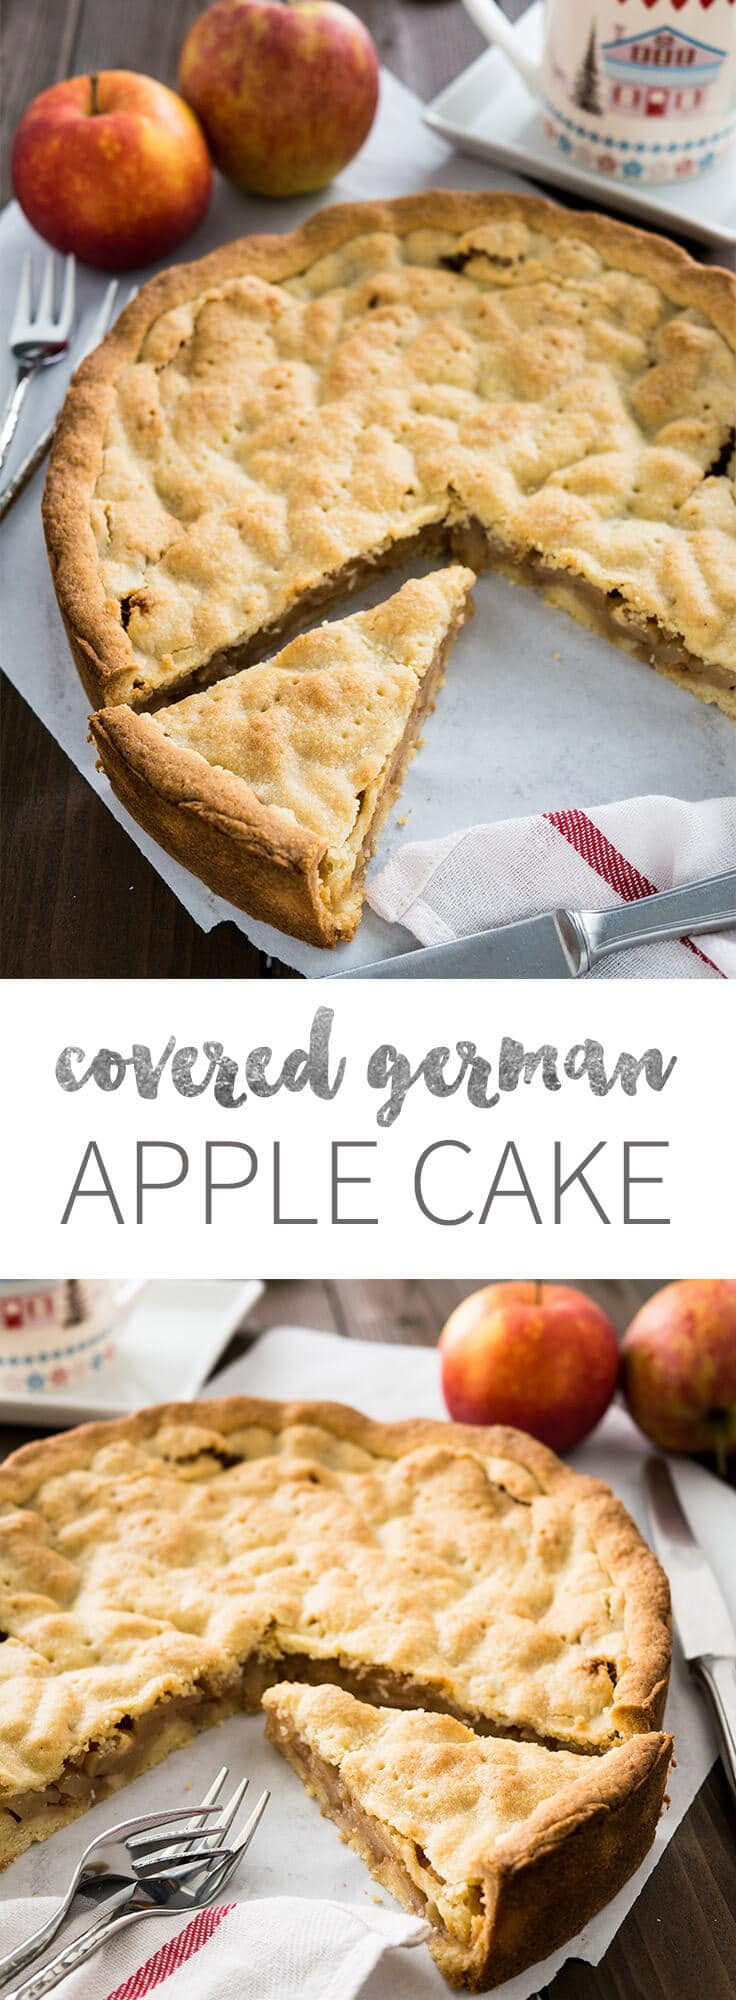 This covered Apple Cake is filled with cinnamon-seasoned apple chunks and topped with a vanilla shortbread crust. You can get this cake in every German bakery!